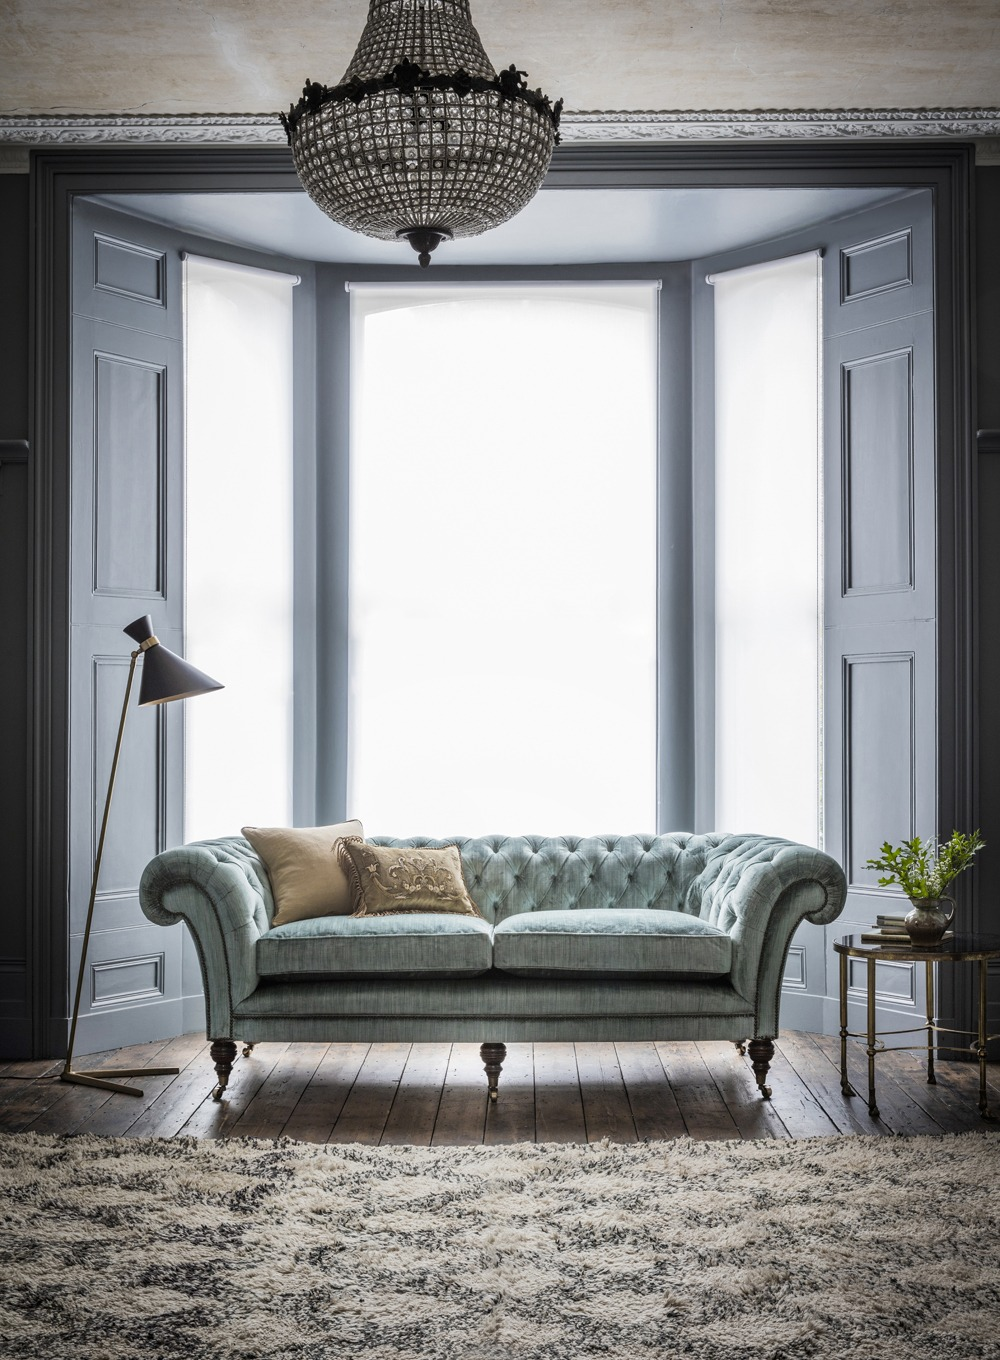 IMAGE via Beaumont & Fletcher, feat. 'Grenville' Sofa in Teal